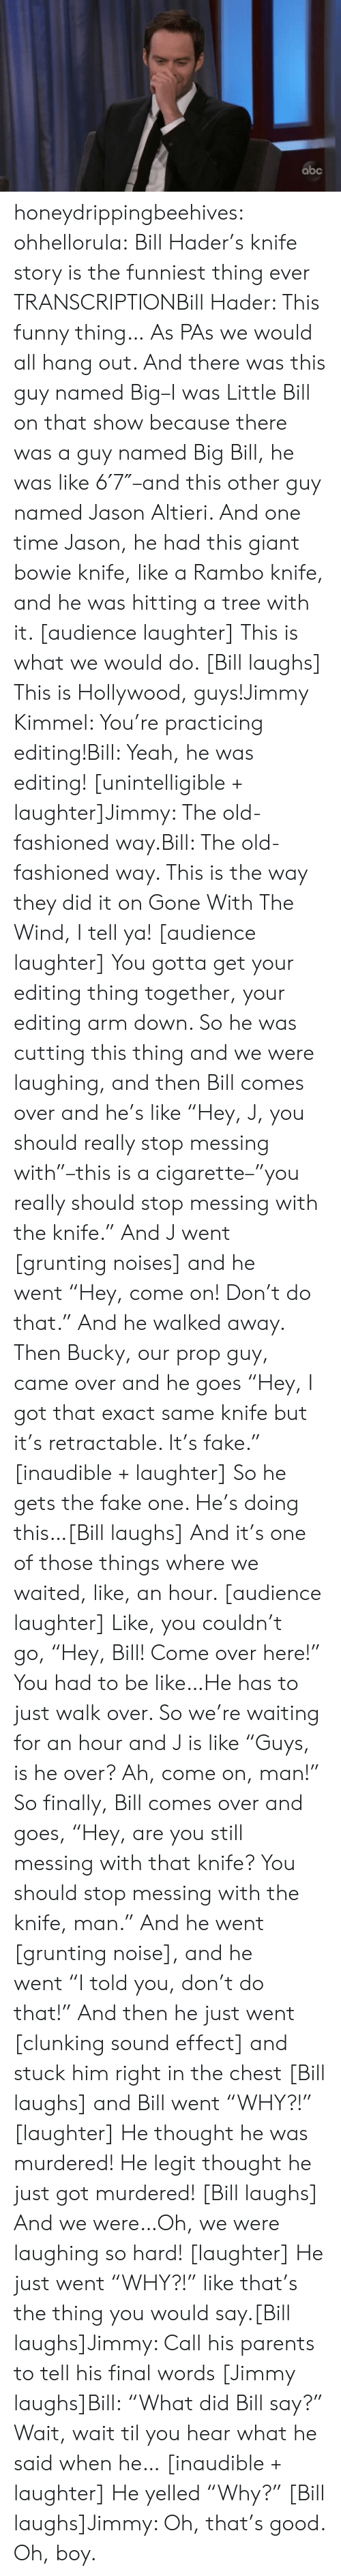 "cutting: abc honeydrippingbeehives:  ohhellorula: Bill Hader's knife story is the funniest thing ever TRANSCRIPTIONBill Hader: This funny thing… As PAs we would all hang out. And there was this guy named Big–I was Little Bill on that show because there was a guy named Big Bill, he was like 6′7″–and this other guy named Jason Altieri. And one time Jason, he had this giant bowie knife, like a Rambo knife, and he was hitting a tree with it. [audience laughter] This is what we would do. [Bill laughs] This is Hollywood, guys!Jimmy Kimmel: You're practicing editing!Bill: Yeah, he was editing! [unintelligible + laughter]Jimmy: The old-fashioned way.Bill: The old-fashioned way. This is the way they did it on Gone With The Wind, I tell ya! [audience laughter] You gotta get your editing thing together, your editing arm down. So he was cutting this thing and we were laughing, and then Bill comes over and he's like ""Hey, J, you should really stop messing with""–this is a cigarette–""you really should stop messing with the knife."" And J went [grunting noises] and he went ""Hey, come on! Don't do that."" And he walked away. Then Bucky, our prop guy, came over and he goes ""Hey, I got that exact same knife but it's retractable. It's fake."" [inaudible + laughter] So he gets the fake one. He's doing this…[Bill laughs] And it's one of those things where we waited, like, an hour. [audience laughter] Like, you couldn't go, ""Hey, Bill! Come over here!"" You had to be like…He has to just walk over. So we're waiting for an hour and J is like ""Guys, is he over? Ah, come on, man!"" So finally, Bill comes over and goes, ""Hey, are you still messing with that knife? You should stop messing with the knife, man."" And he went [grunting noise], and he went ""I told you, don't do that!"" And then he just went [clunking sound effect] and stuck him right in the chest [Bill laughs] and Bill went ""WHY?!"" [laughter] He thought he was murdered! He legit thought he just got murdered! [Bill laughs] And we were…Oh, we were laughing so hard! [laughter] He just went ""WHY?!"" like that's the thing you would say.[Bill laughs]Jimmy: Call his parents to tell his final words [Jimmy laughs]Bill: ""What did Bill say?"" Wait, wait til you hear what he said when he… [inaudible + laughter] He yelled ""Why?"" [Bill laughs]Jimmy: Oh, that's good. Oh, boy."